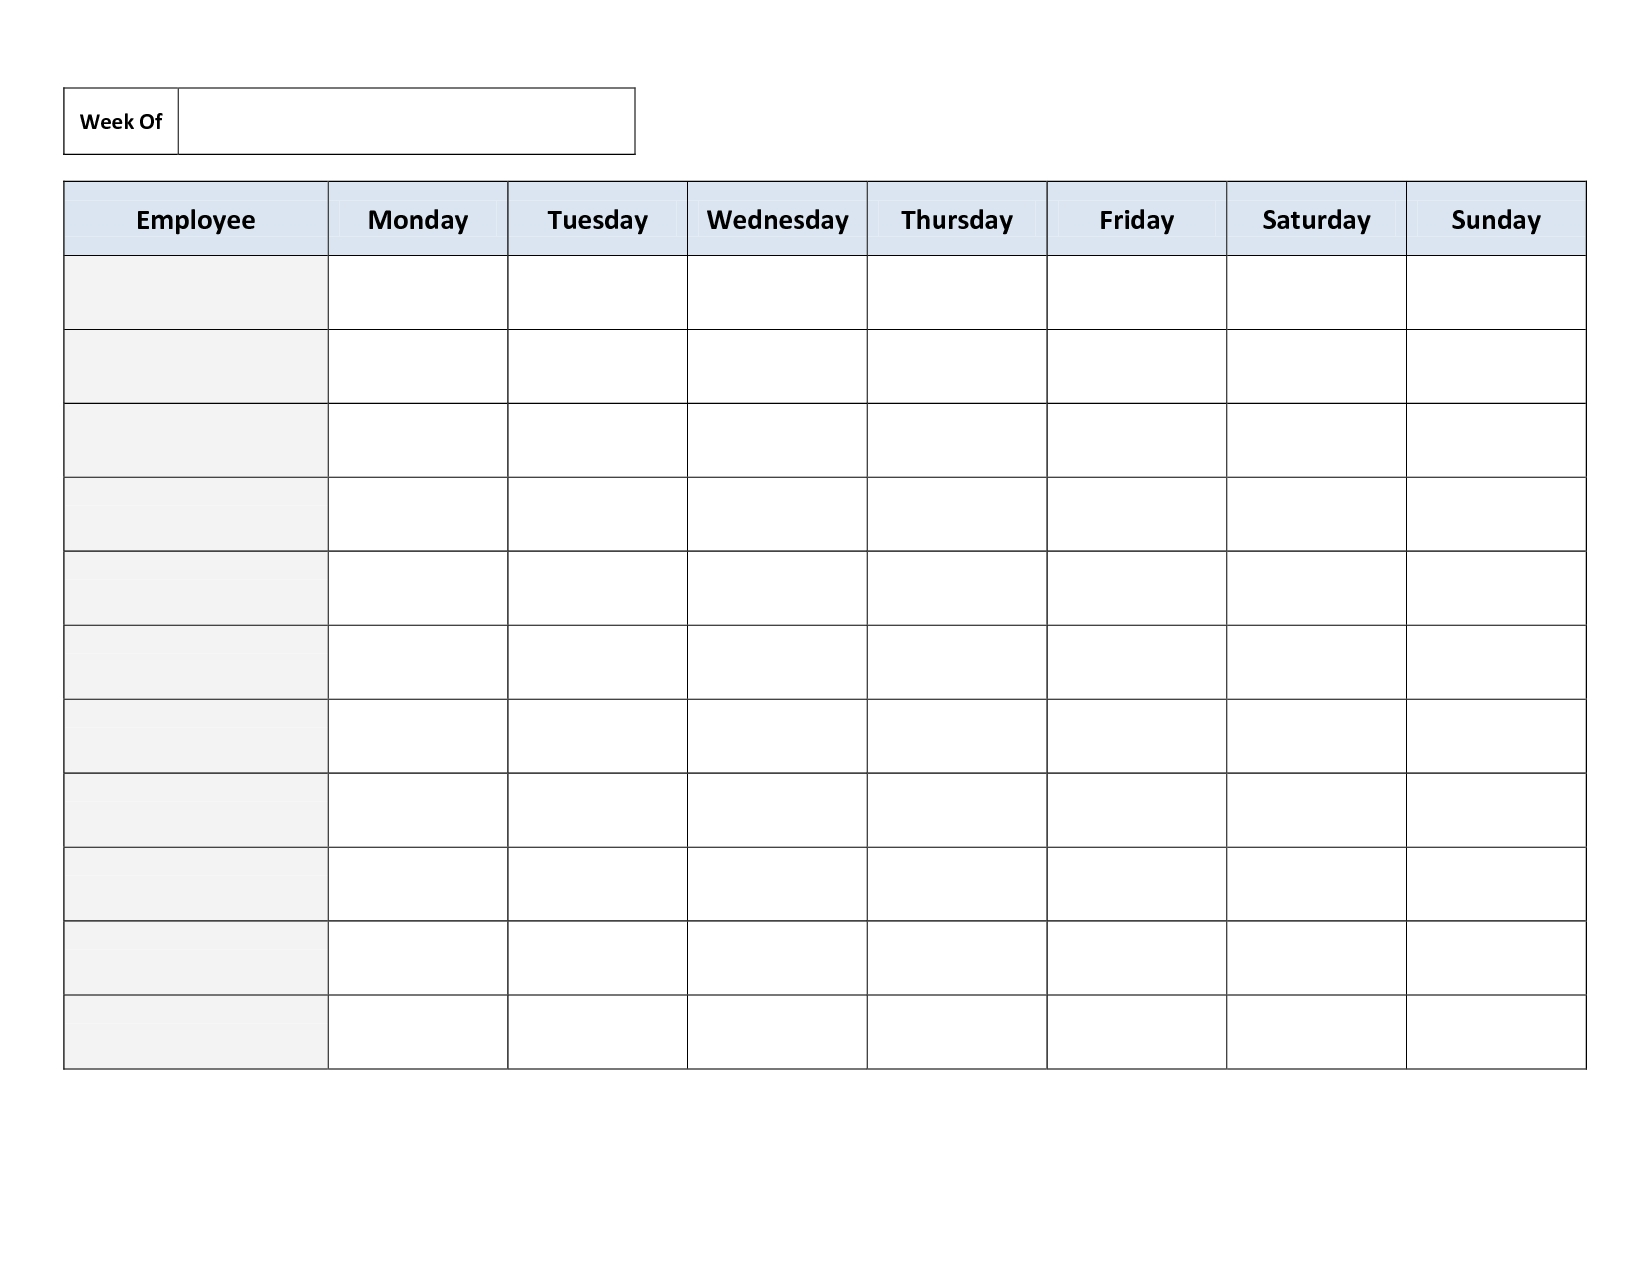 Blank Weekly Work Schedule Template | Timetable Template-Monday To Sunday Calendar Template Writing Practice